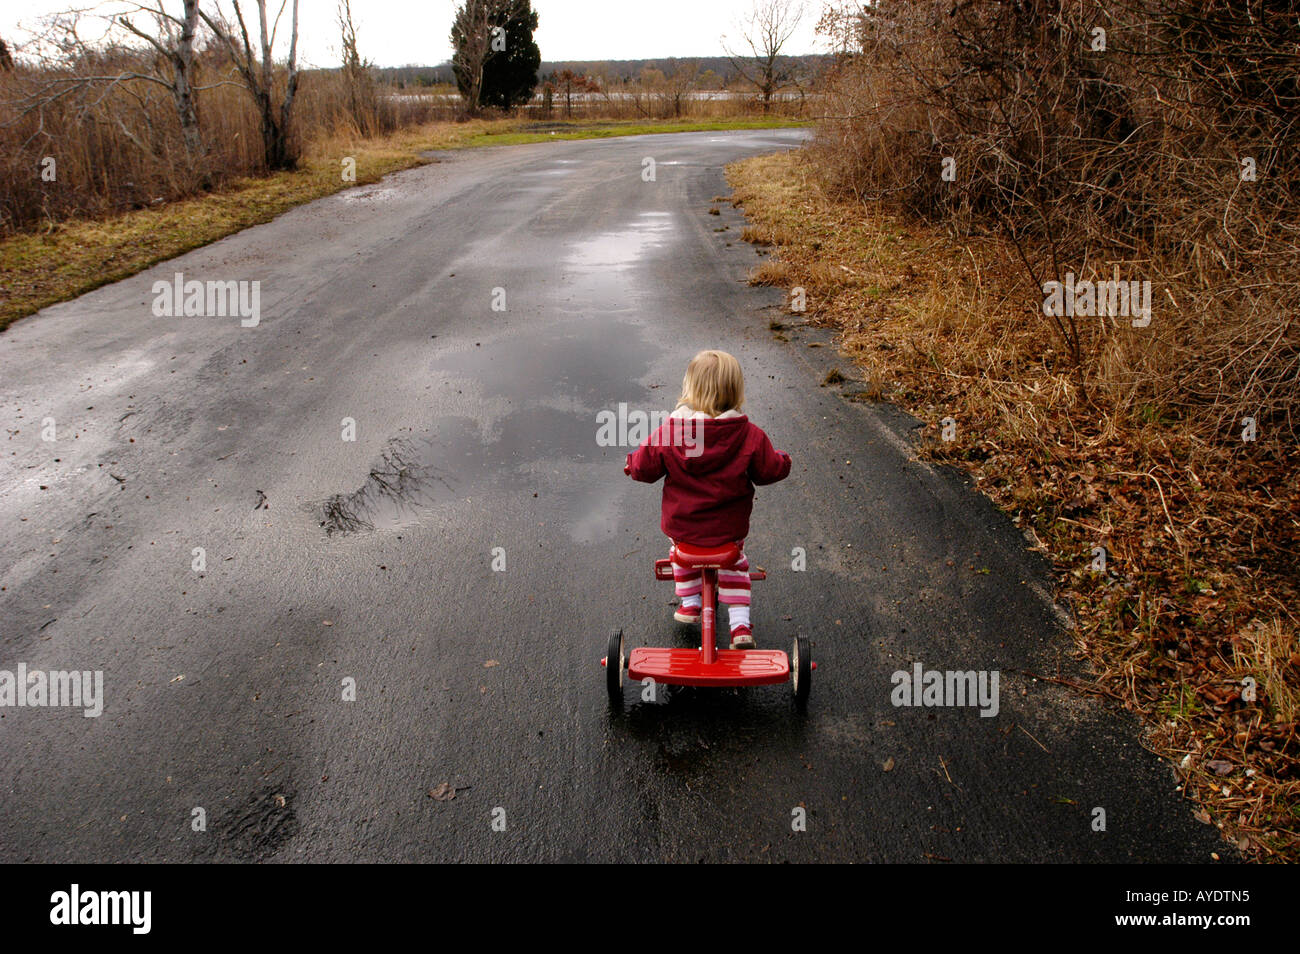 Tricycle bike ride in winter Gordon M Grant Photo - Stock Image